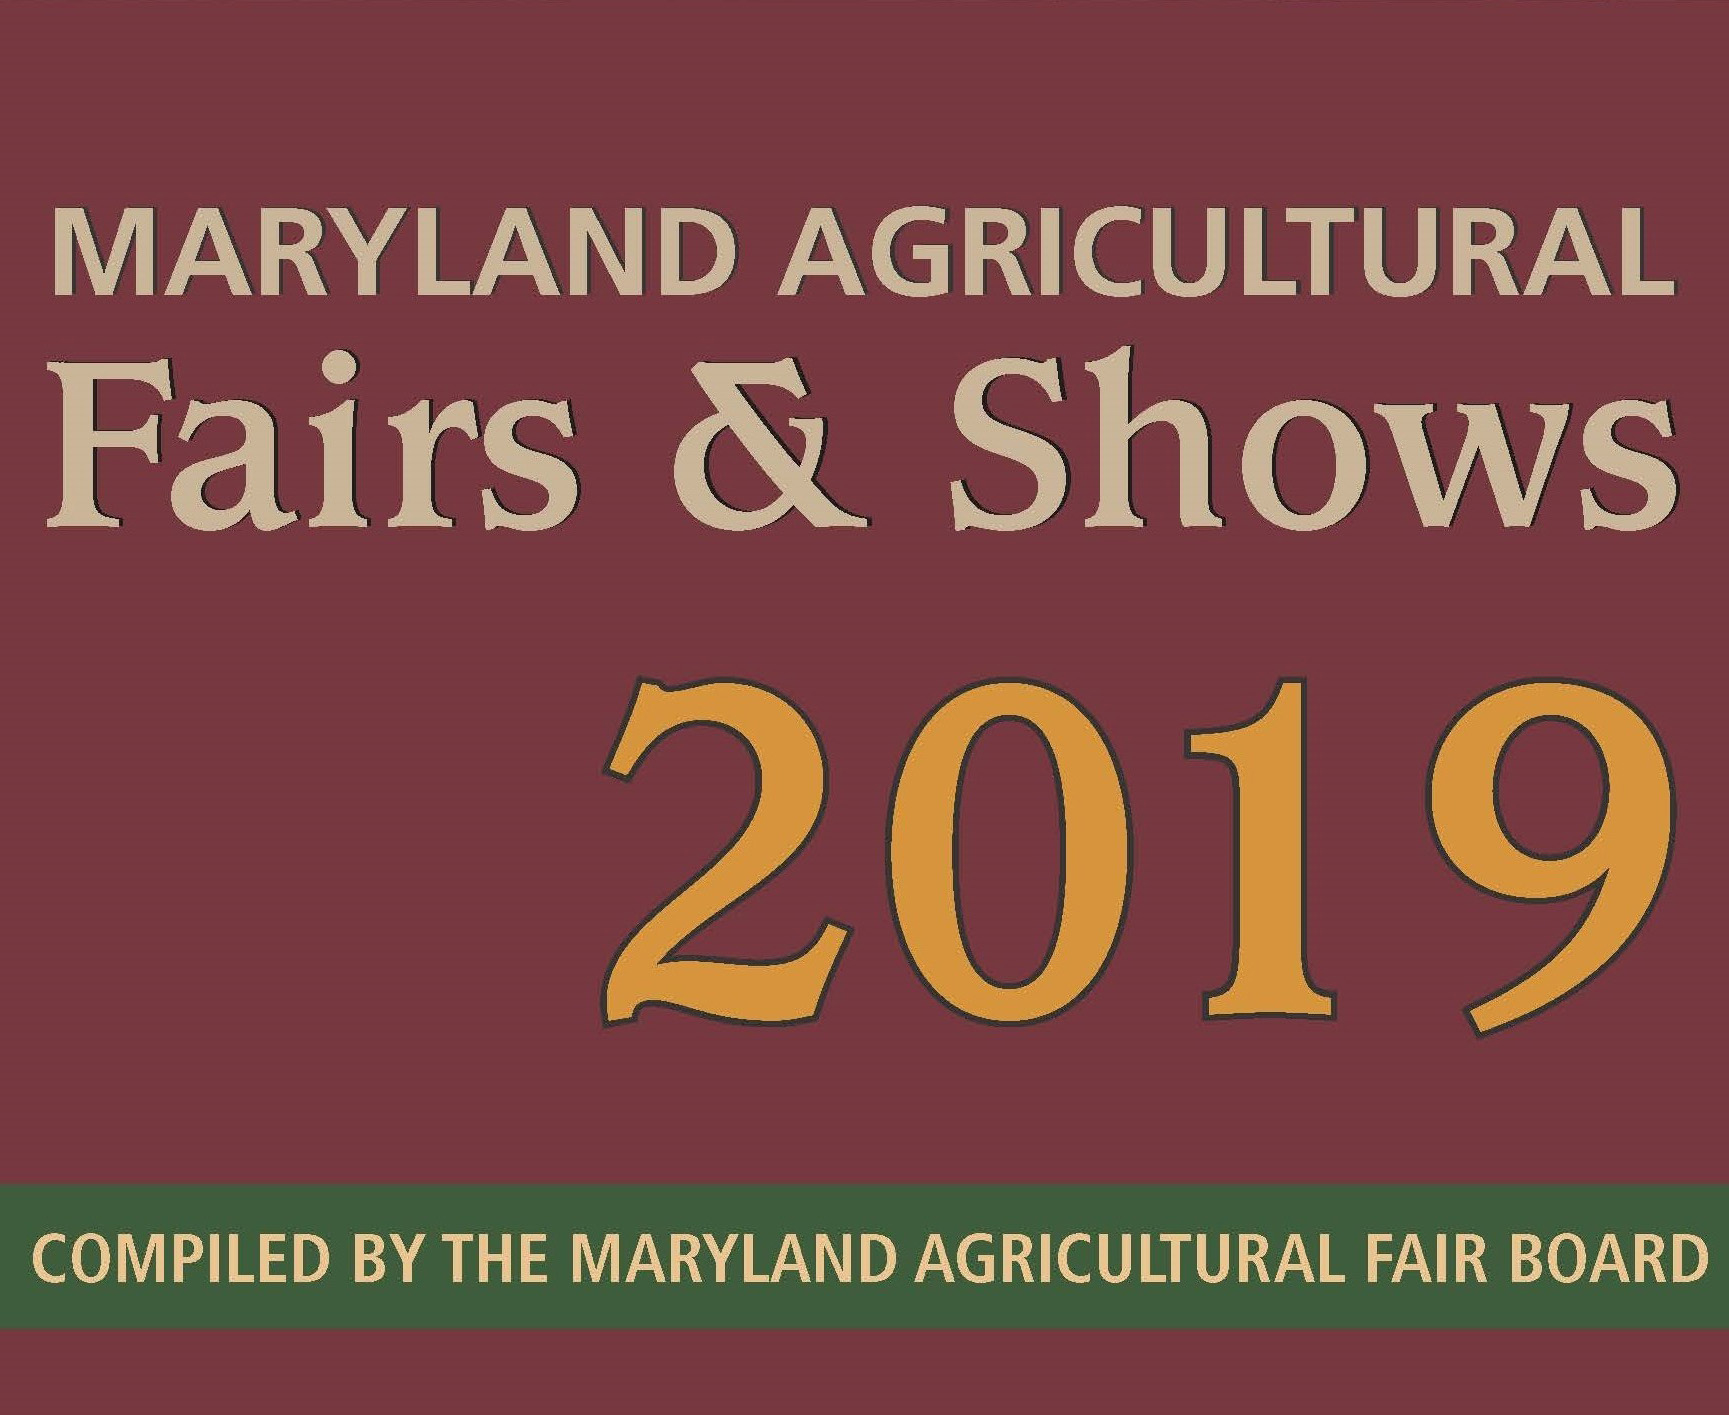 2019 Maryland Agricultural Fairs & Shows Brochure